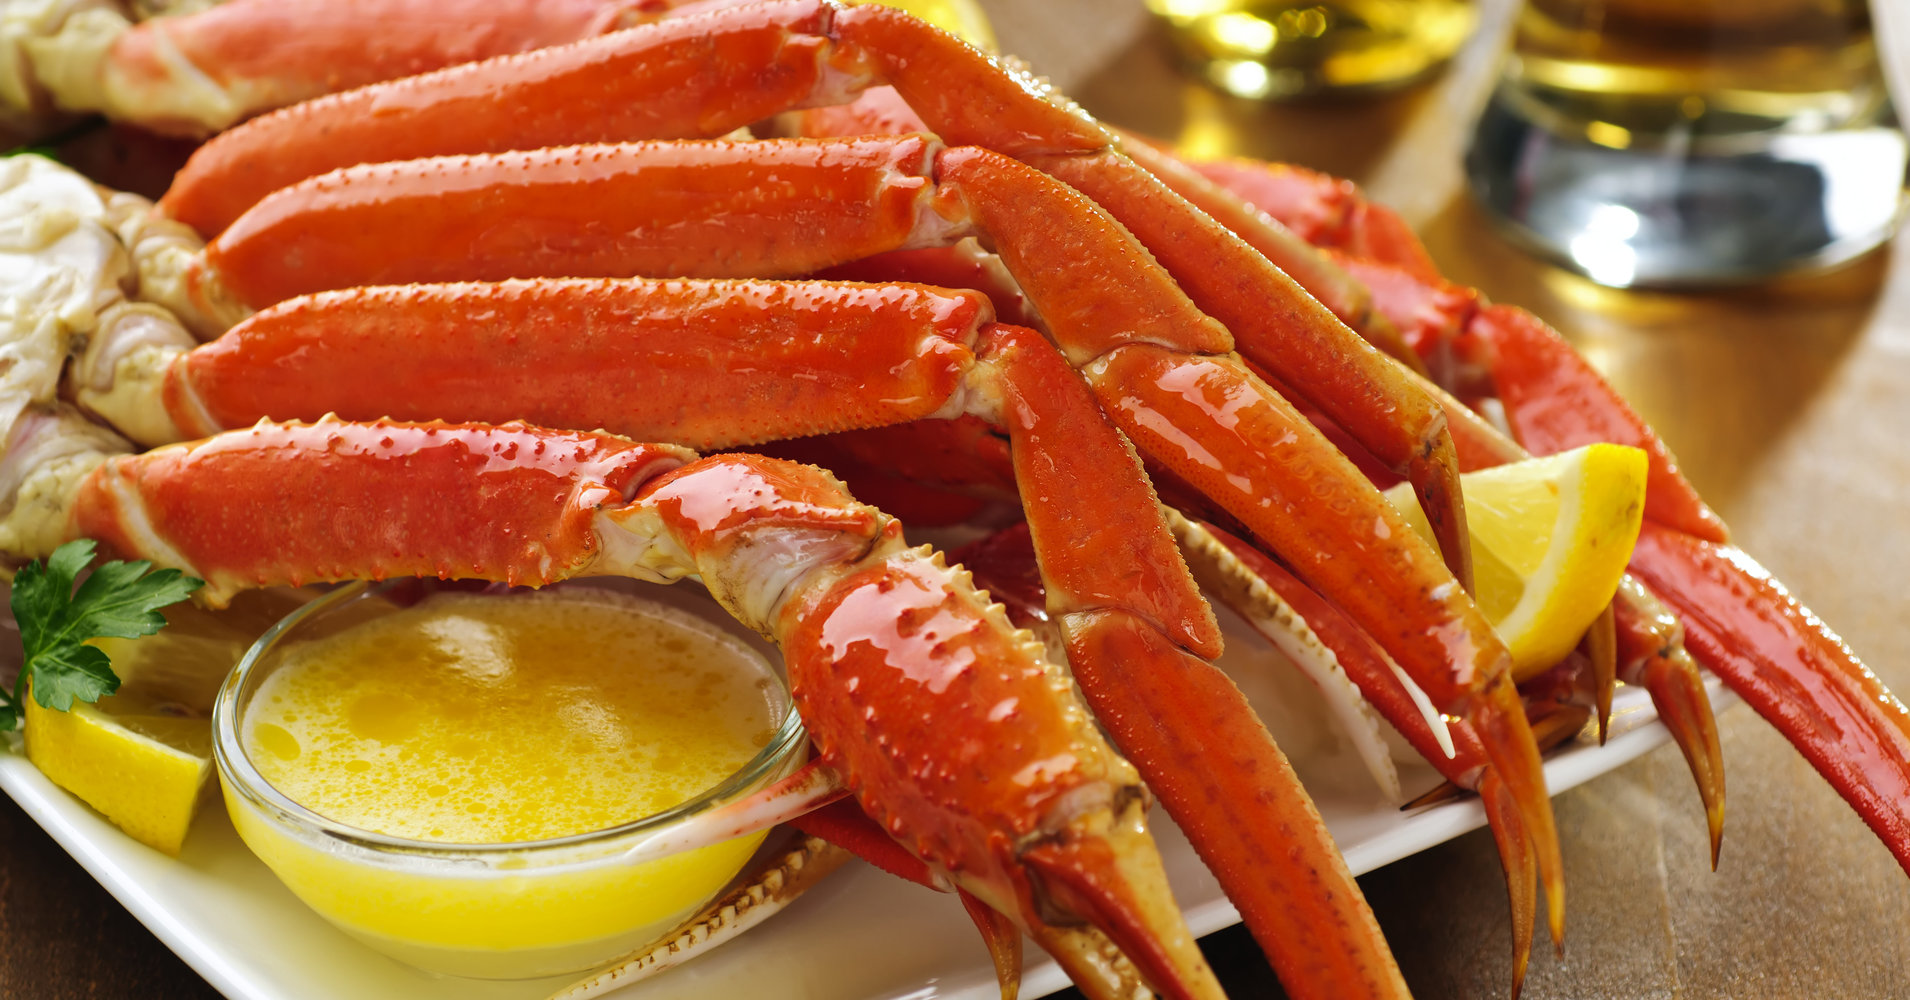 2 People Arrested After Buffet Brawl Over Crab Legs